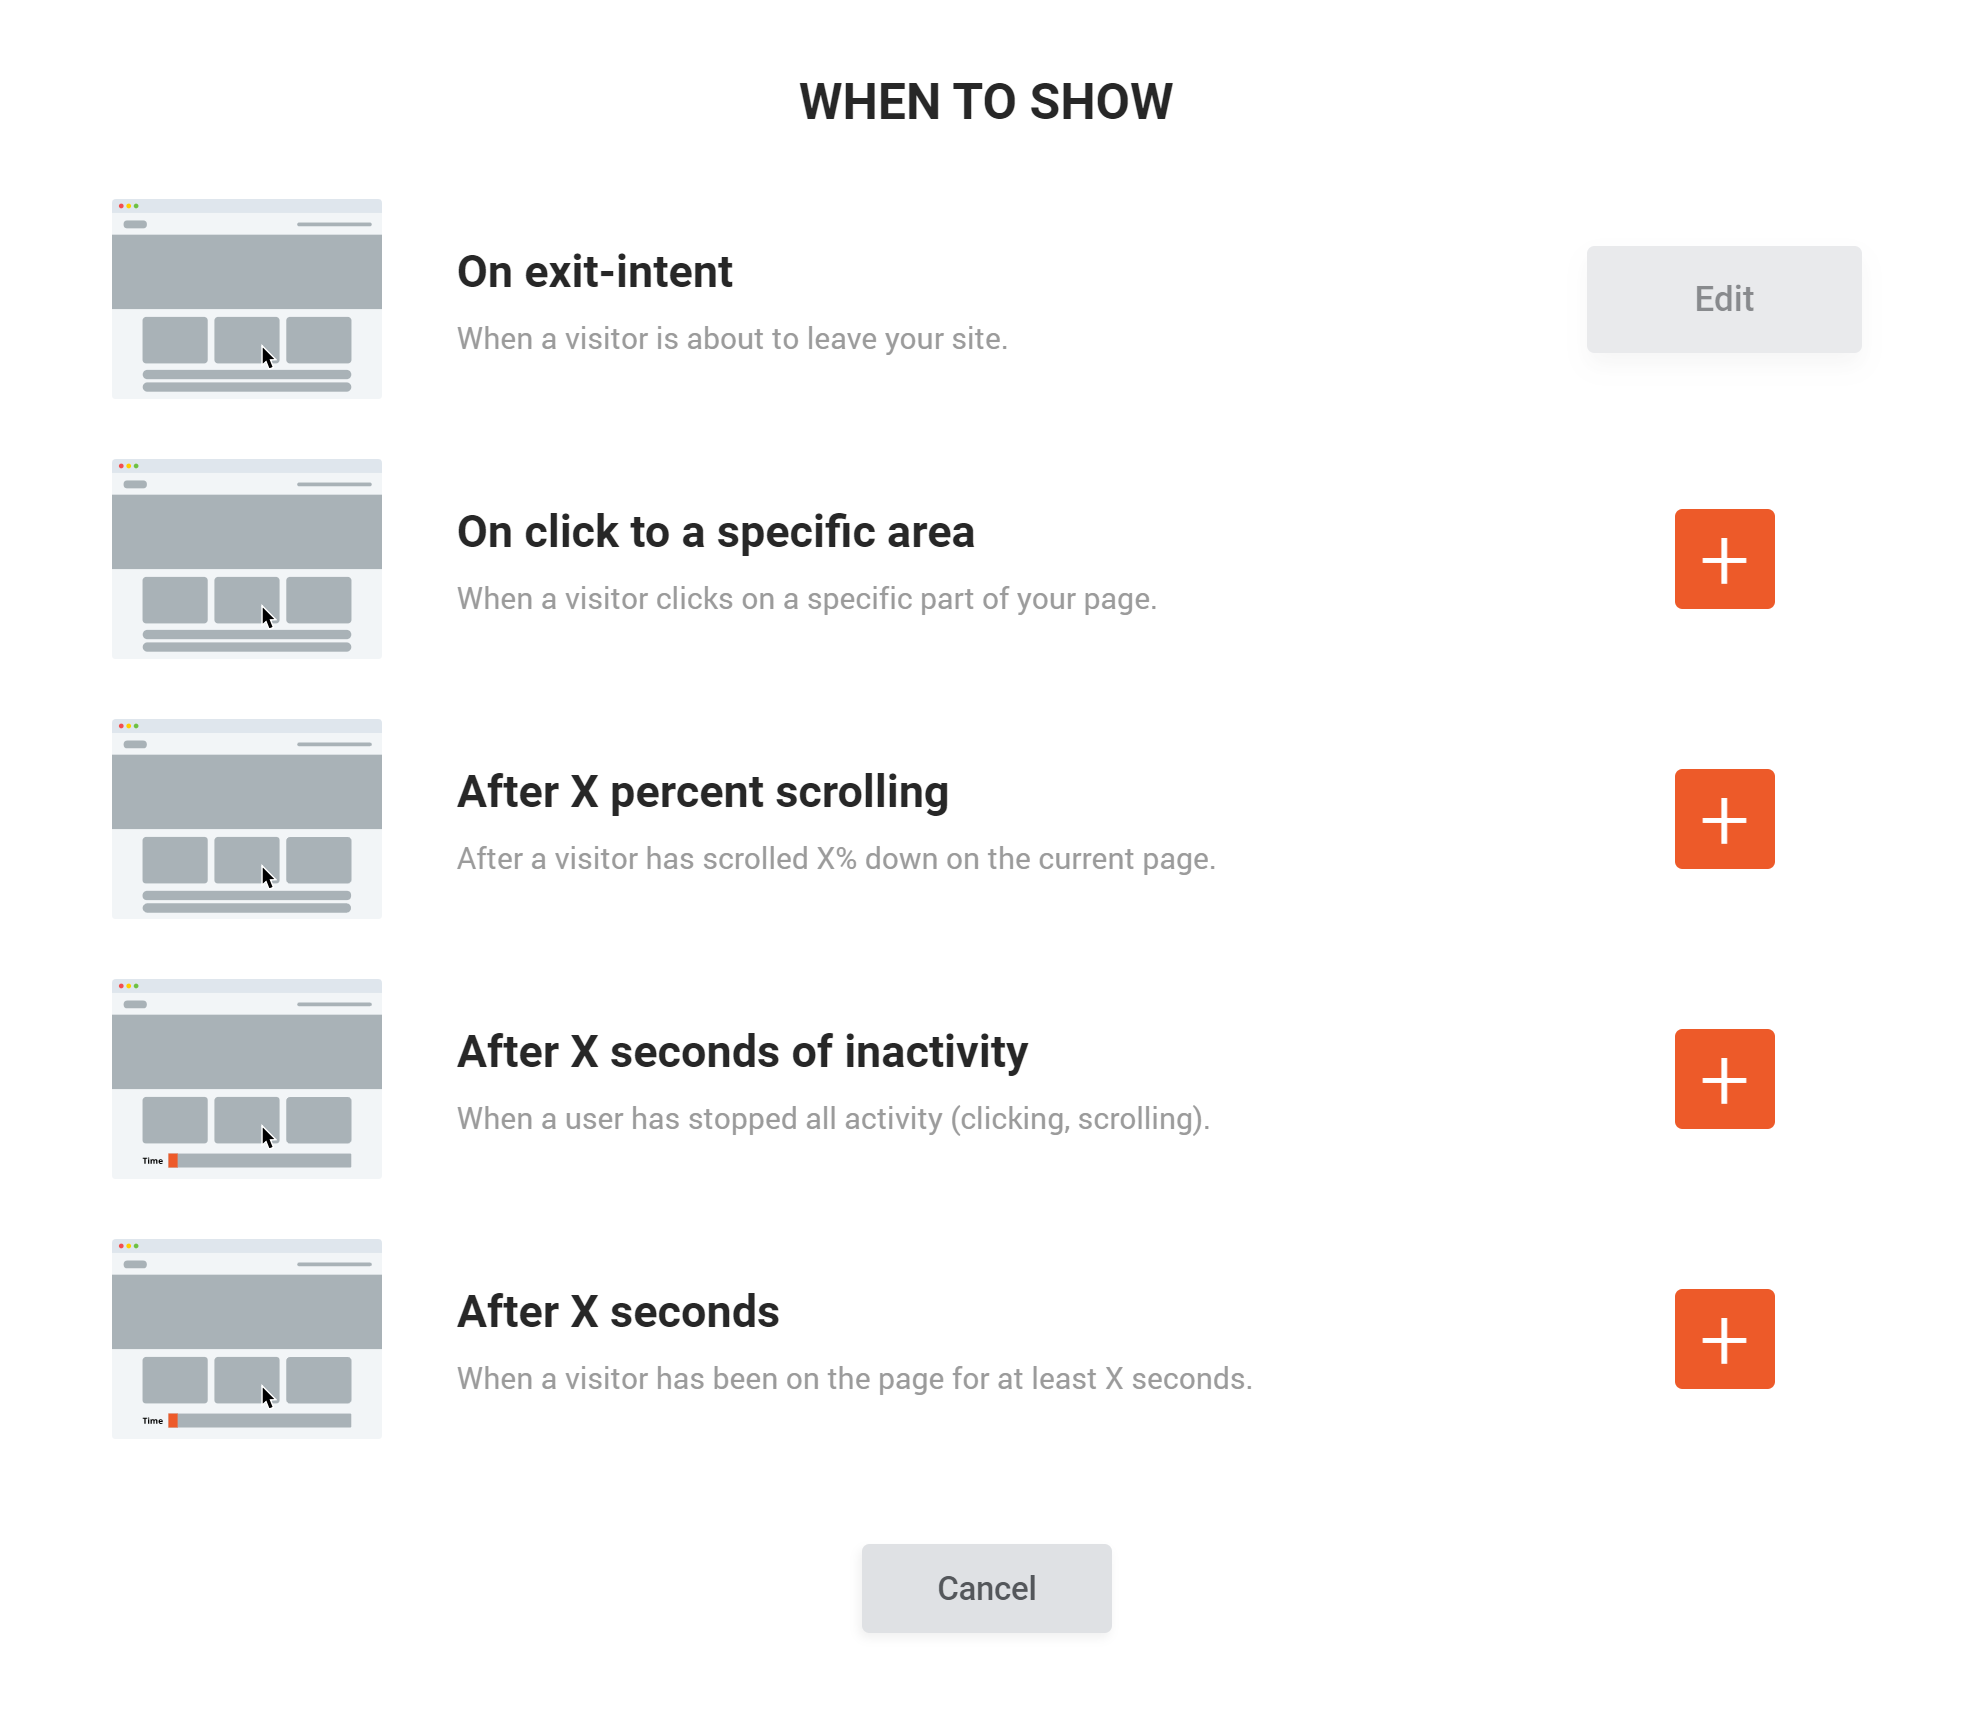 New, much easier menu logic for quick and effective personalization